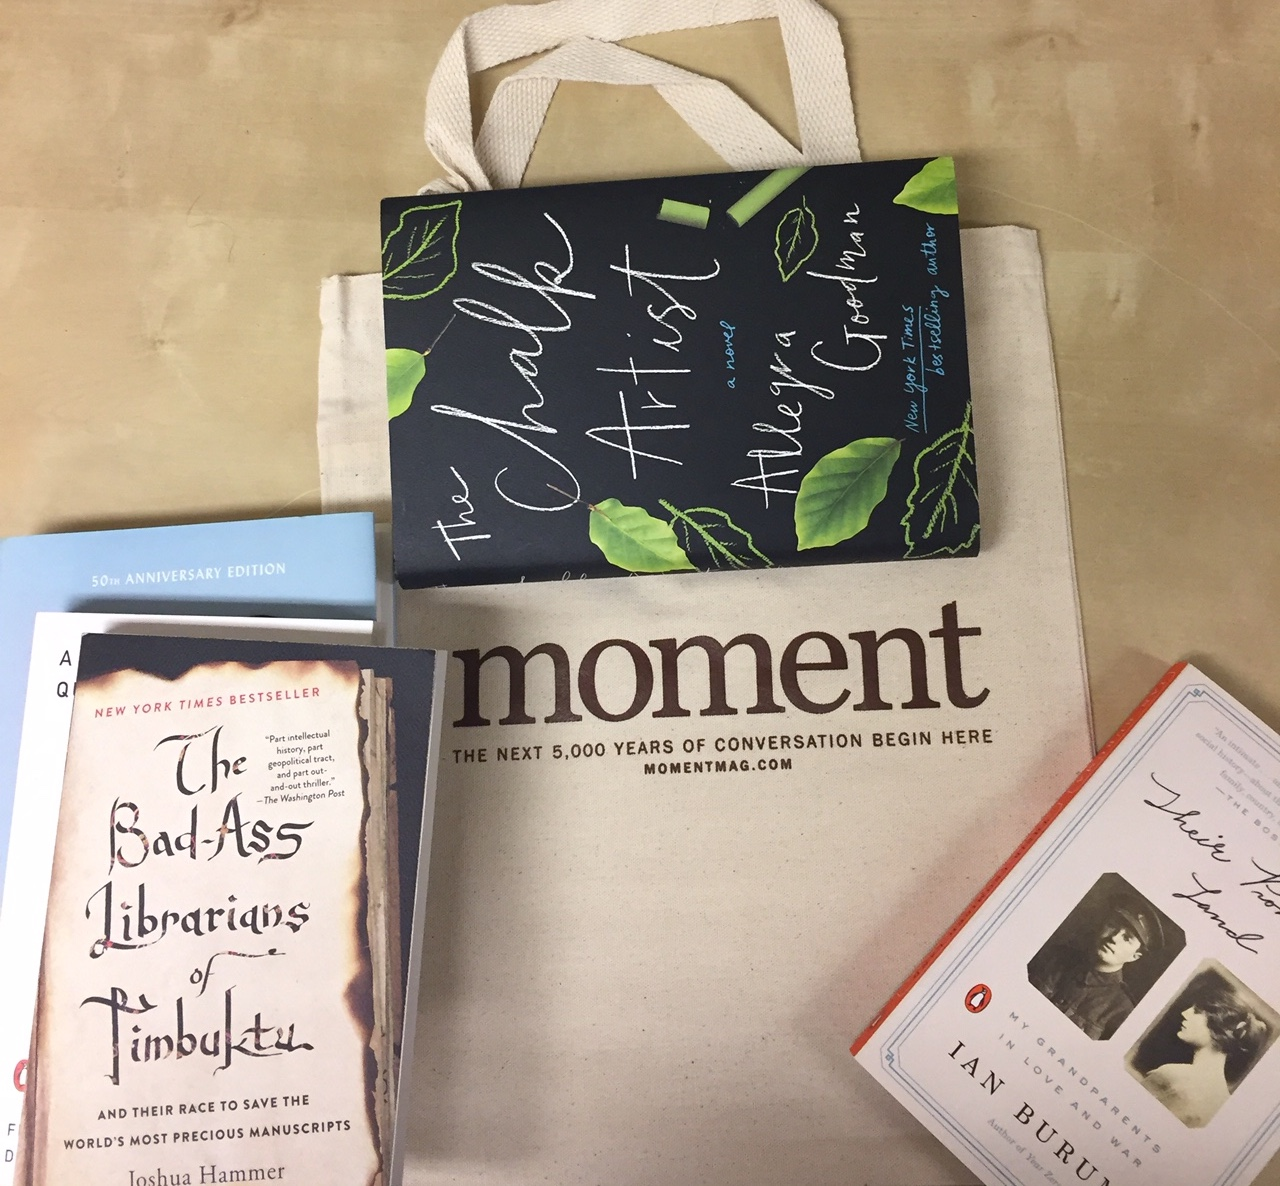 Moment tote bag and books